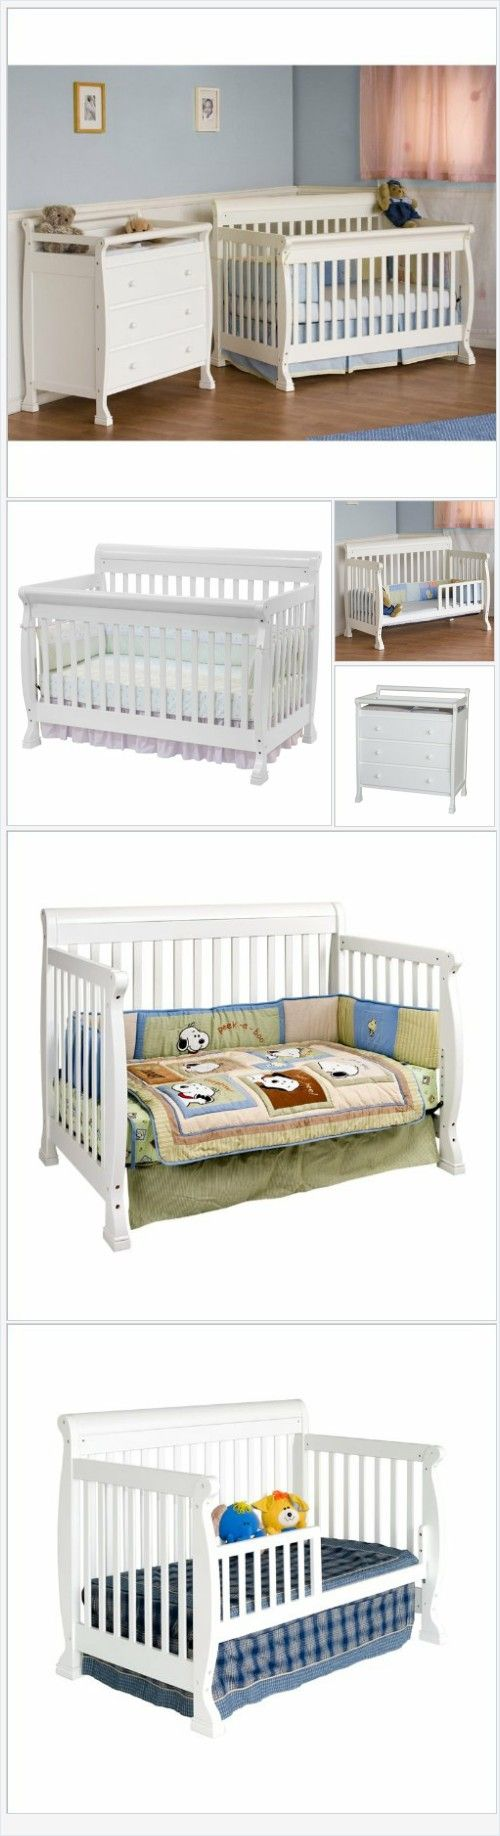 Baby cribs big w - Davinci Kalani Convertible Wood Crib Nursery Set W Toddler Rail In White Every Thing Baby